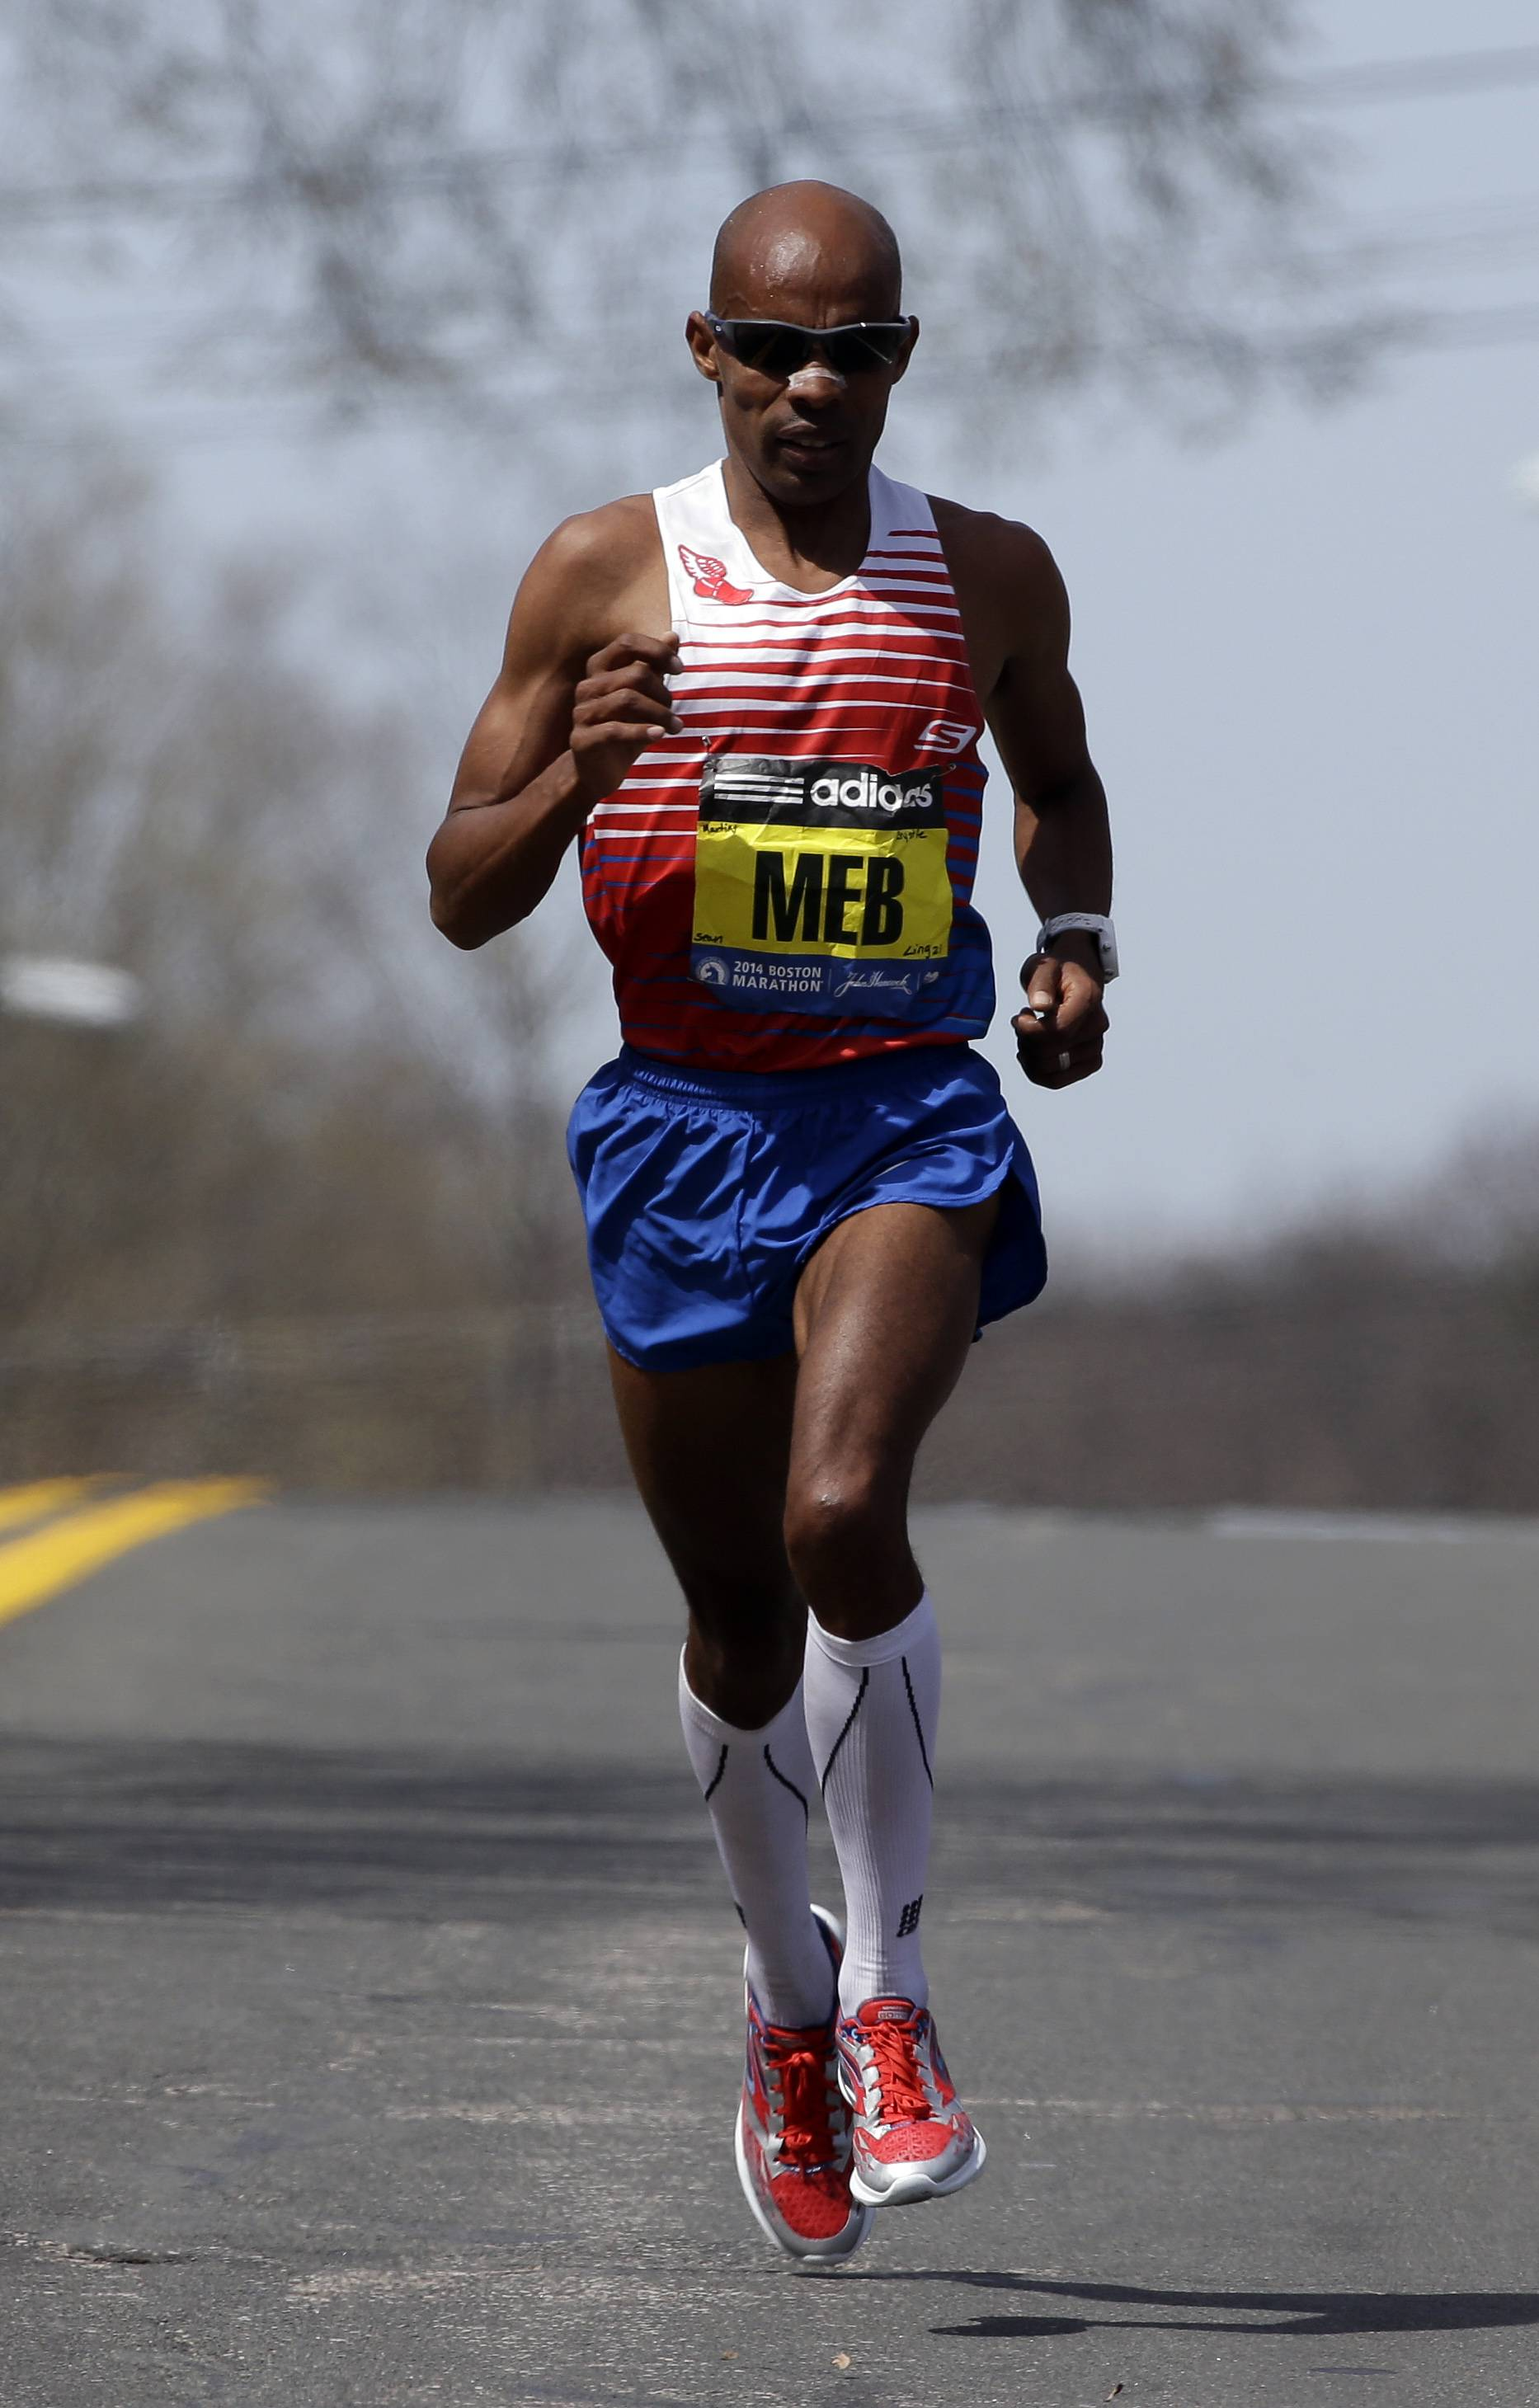 Meb Keflezighi runs alone on the race course during the 118th Boston Marathon Monday, April 21, 2014, en route to Boston.